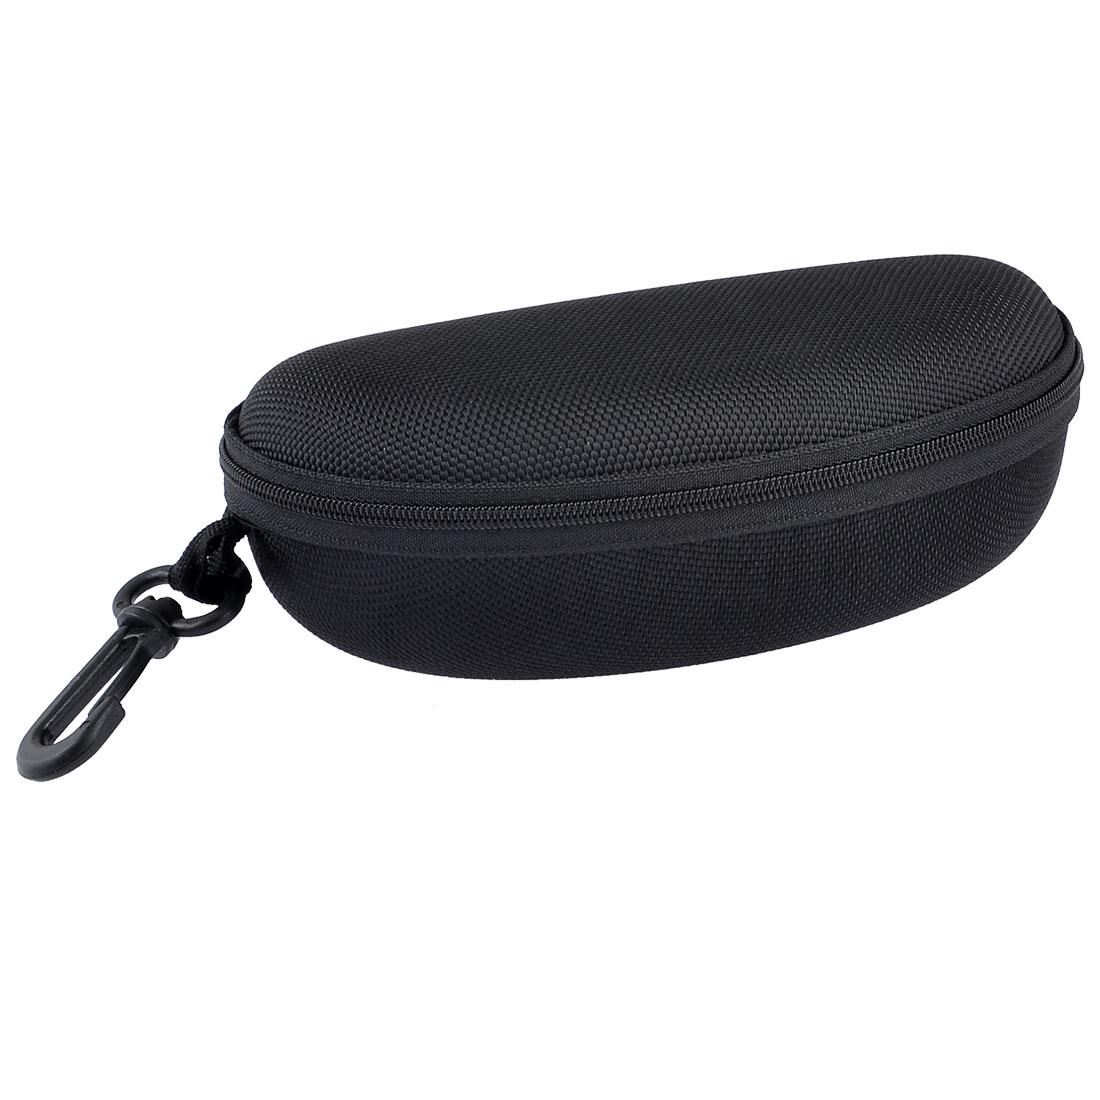 Portable Zipper Closure Sunglasses Eyeglasses Hard Case Box Holder Black